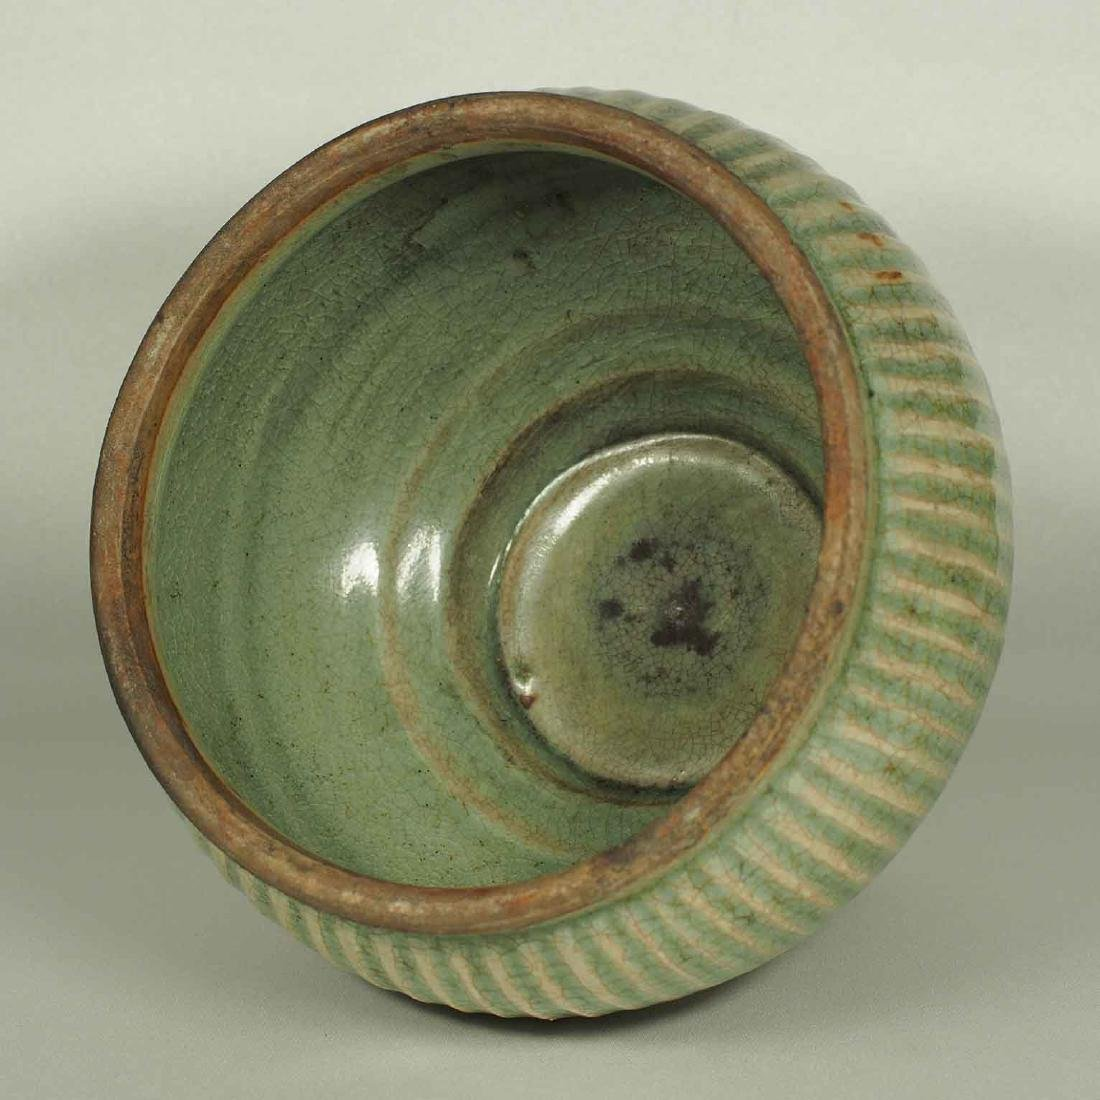 Longquan Fluted Jar with Lid, late Southern Song-early - 7